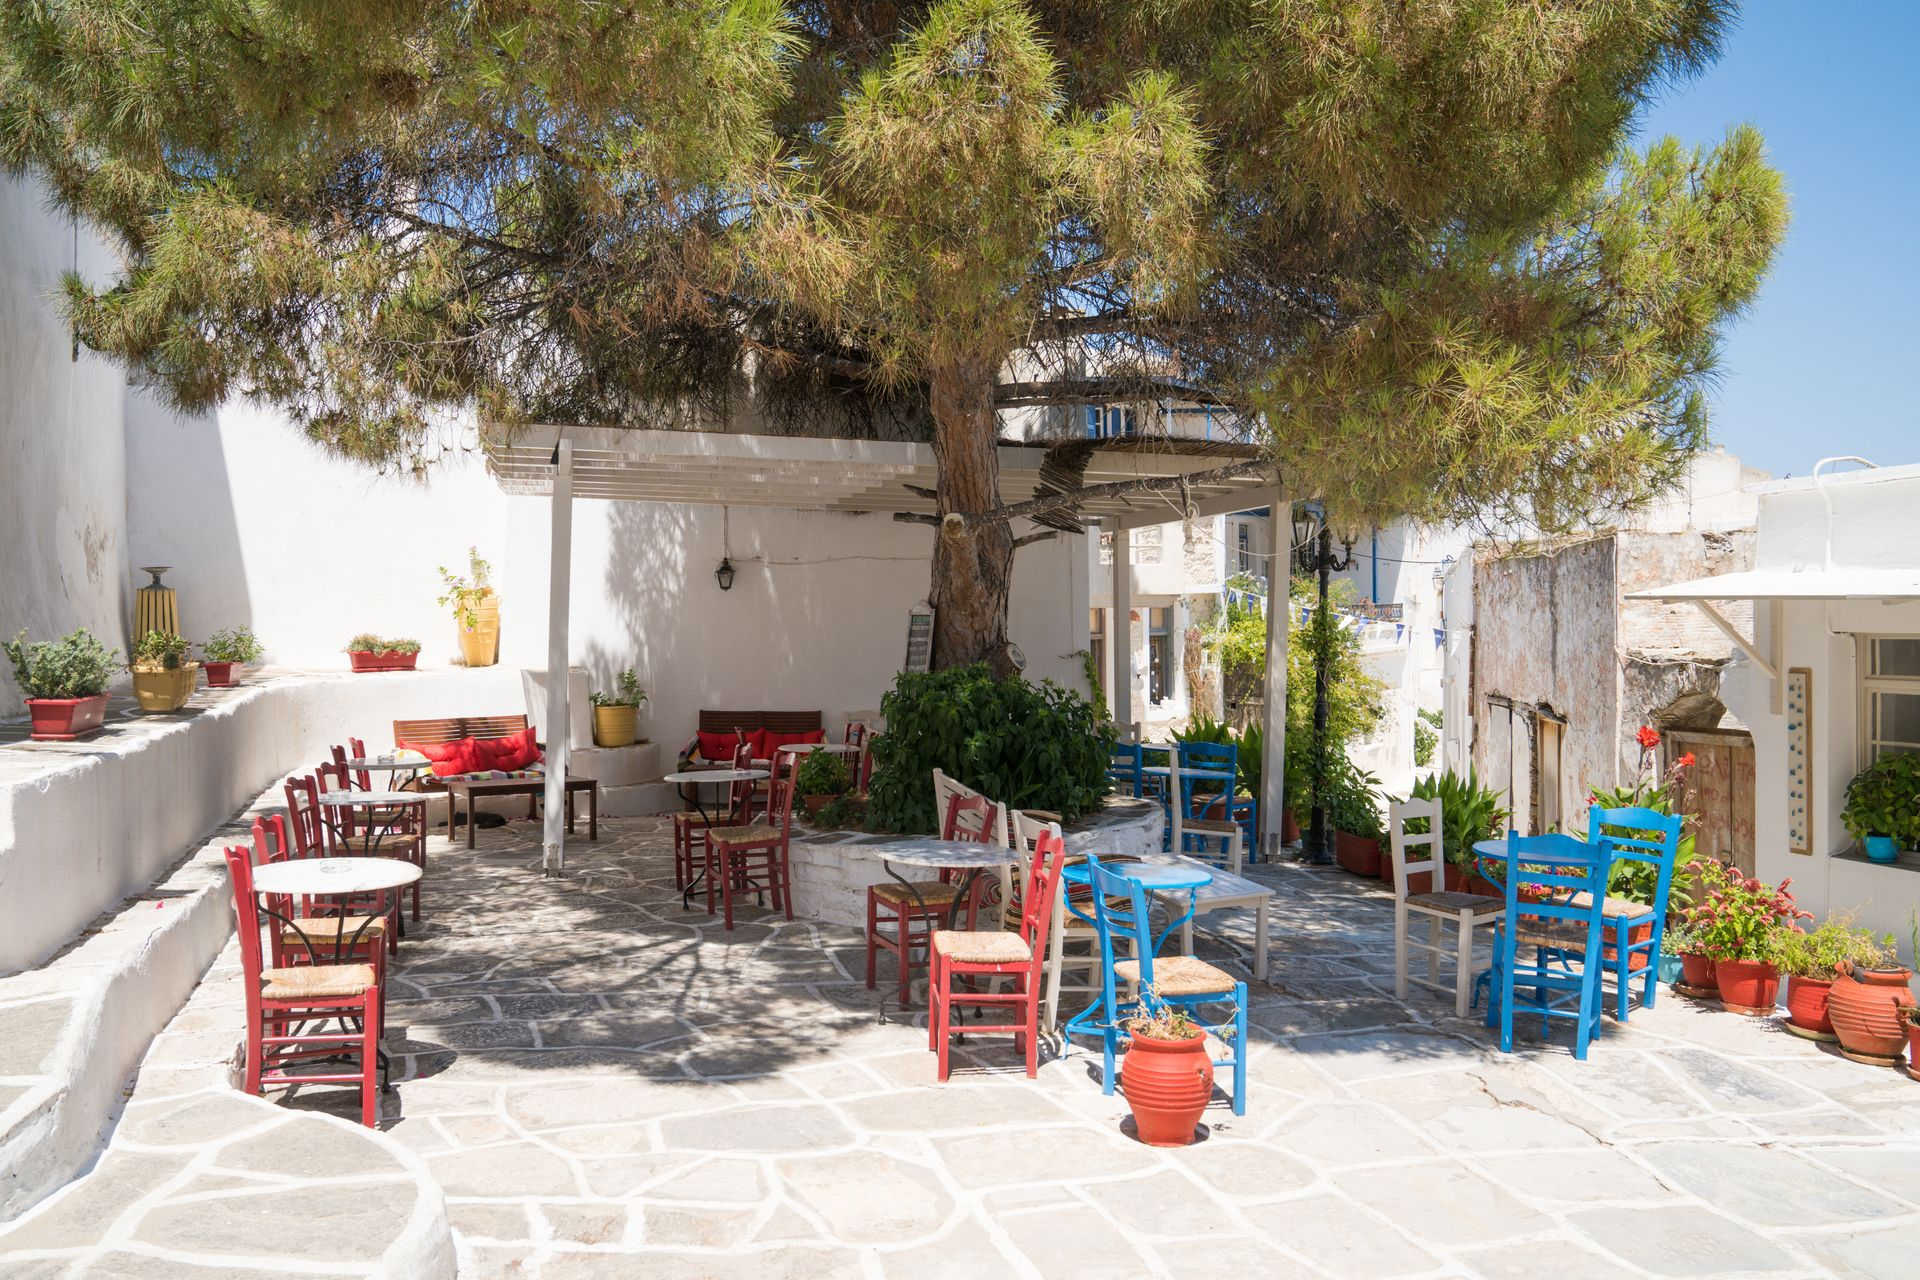 Lefkes, one of the prettiest and best-known villages of Paros